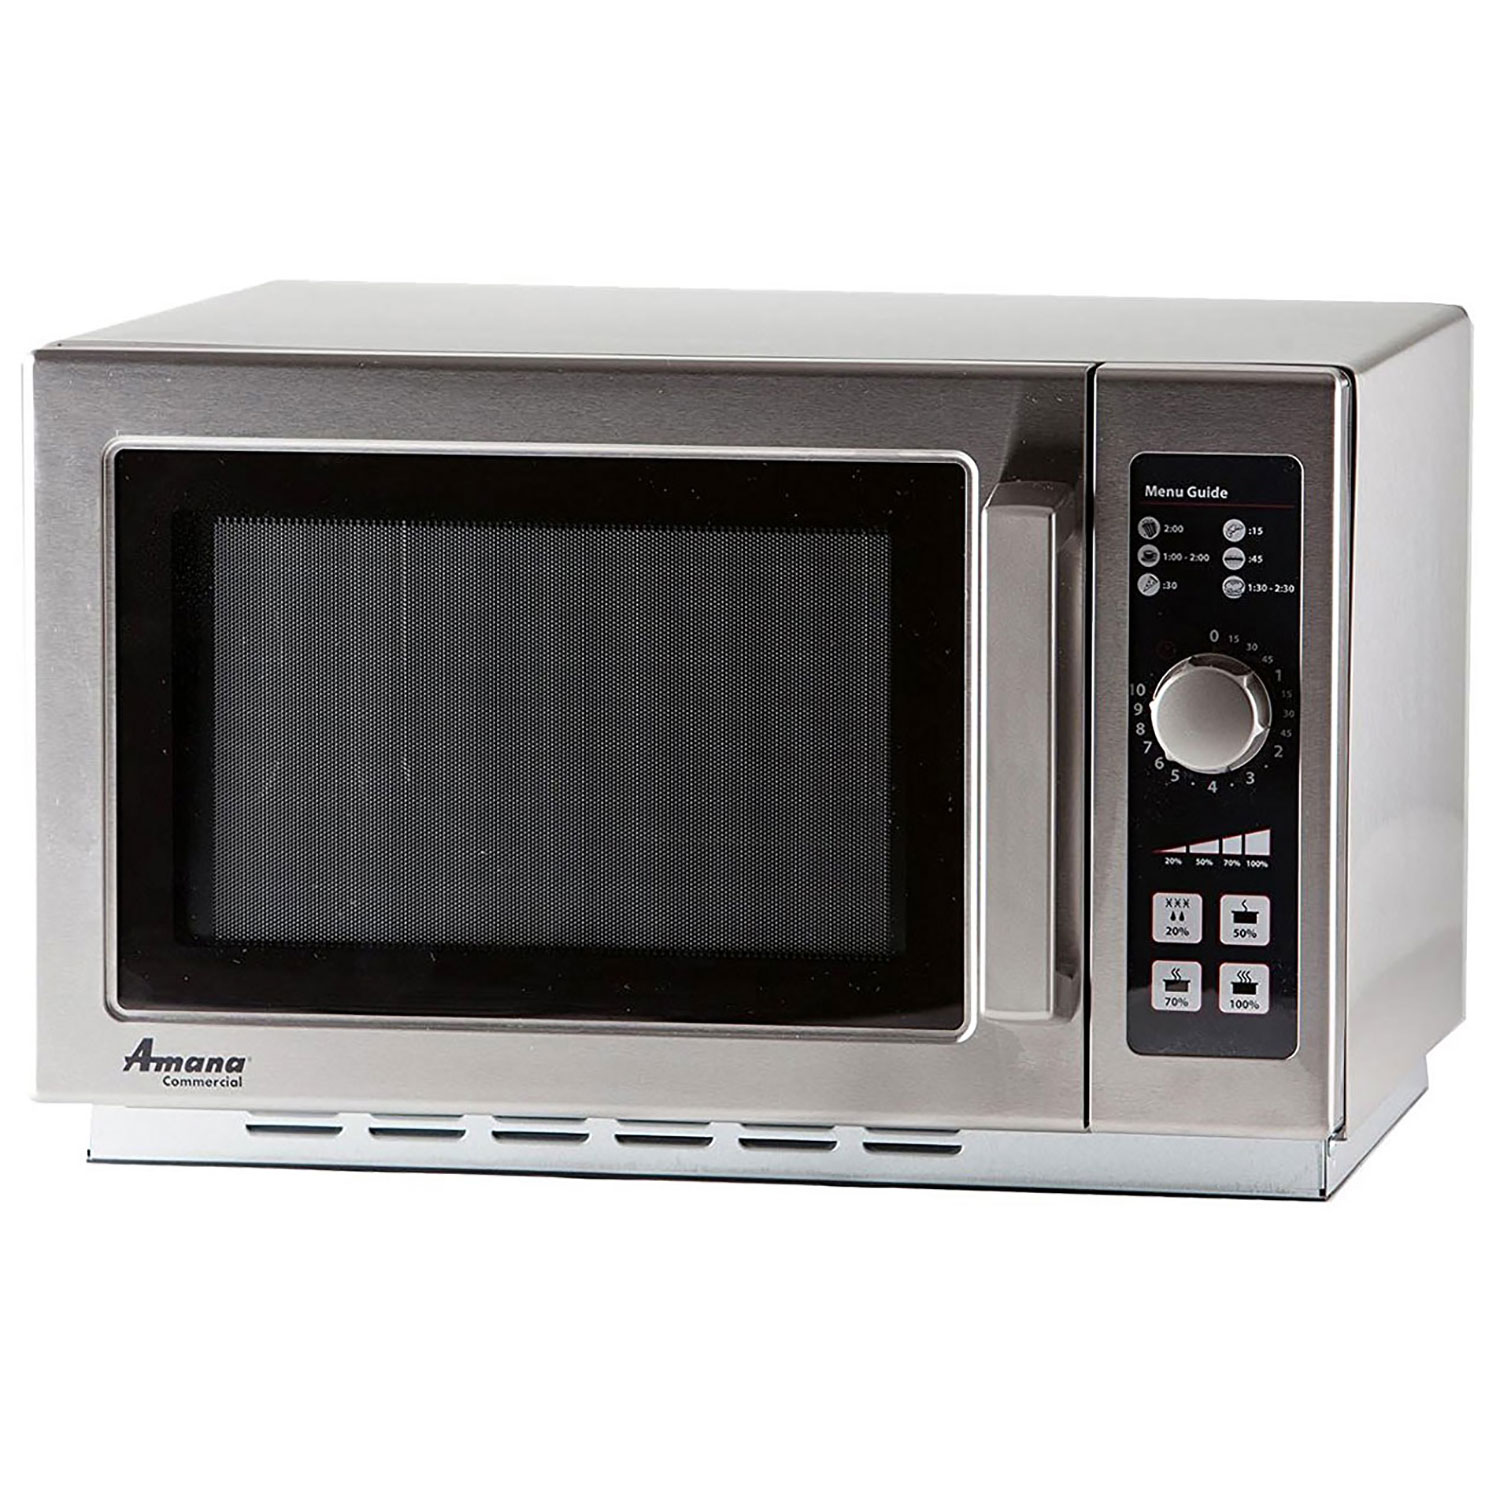 Commercial Microwave, 1.2 Cu. Ft., 1000 Watt, 10-Minute Dial, Lot of 1